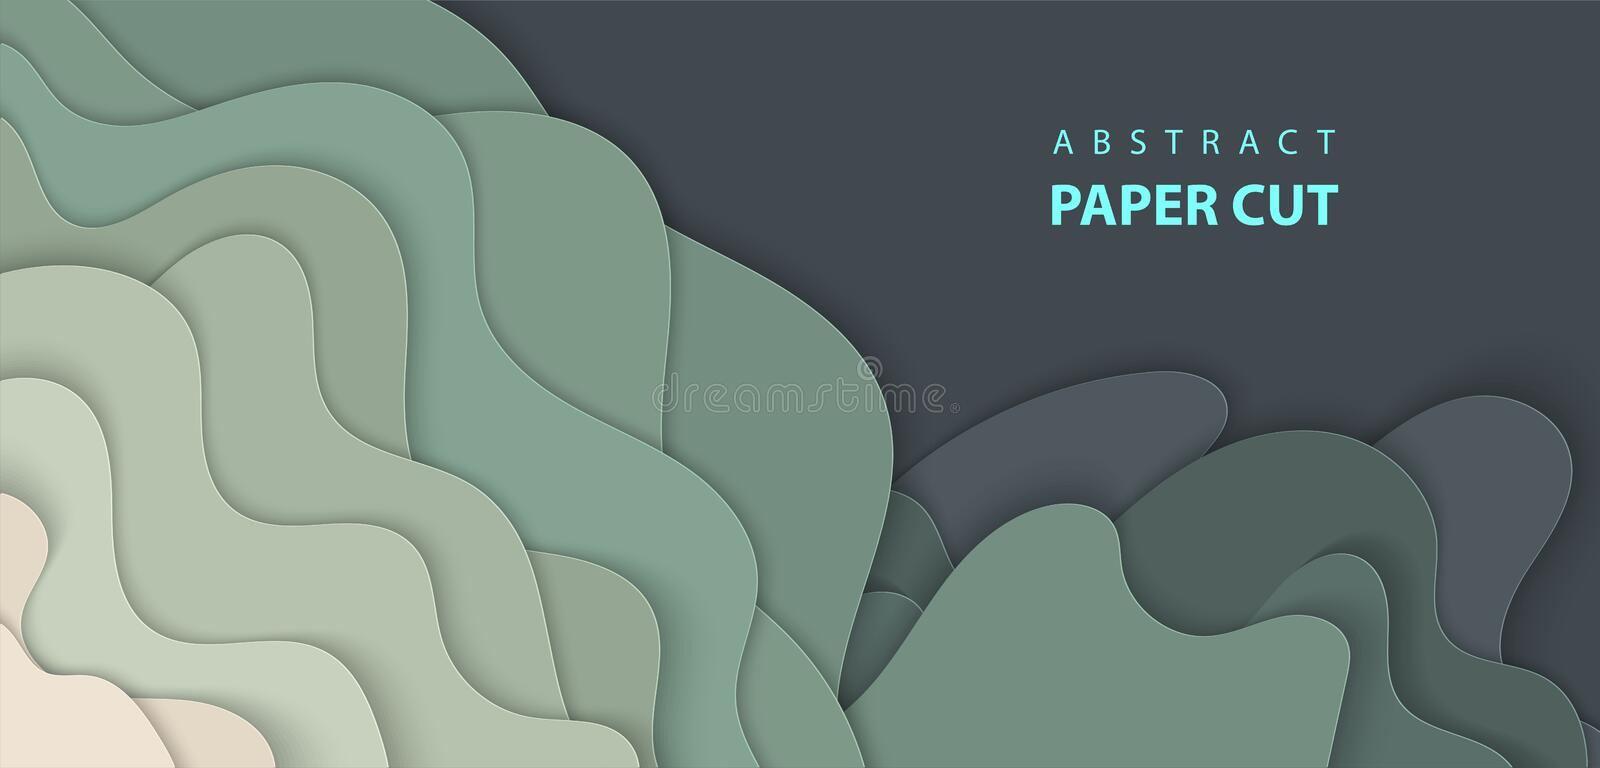 Vector background with dark green color paper cut shapes. vector illustration